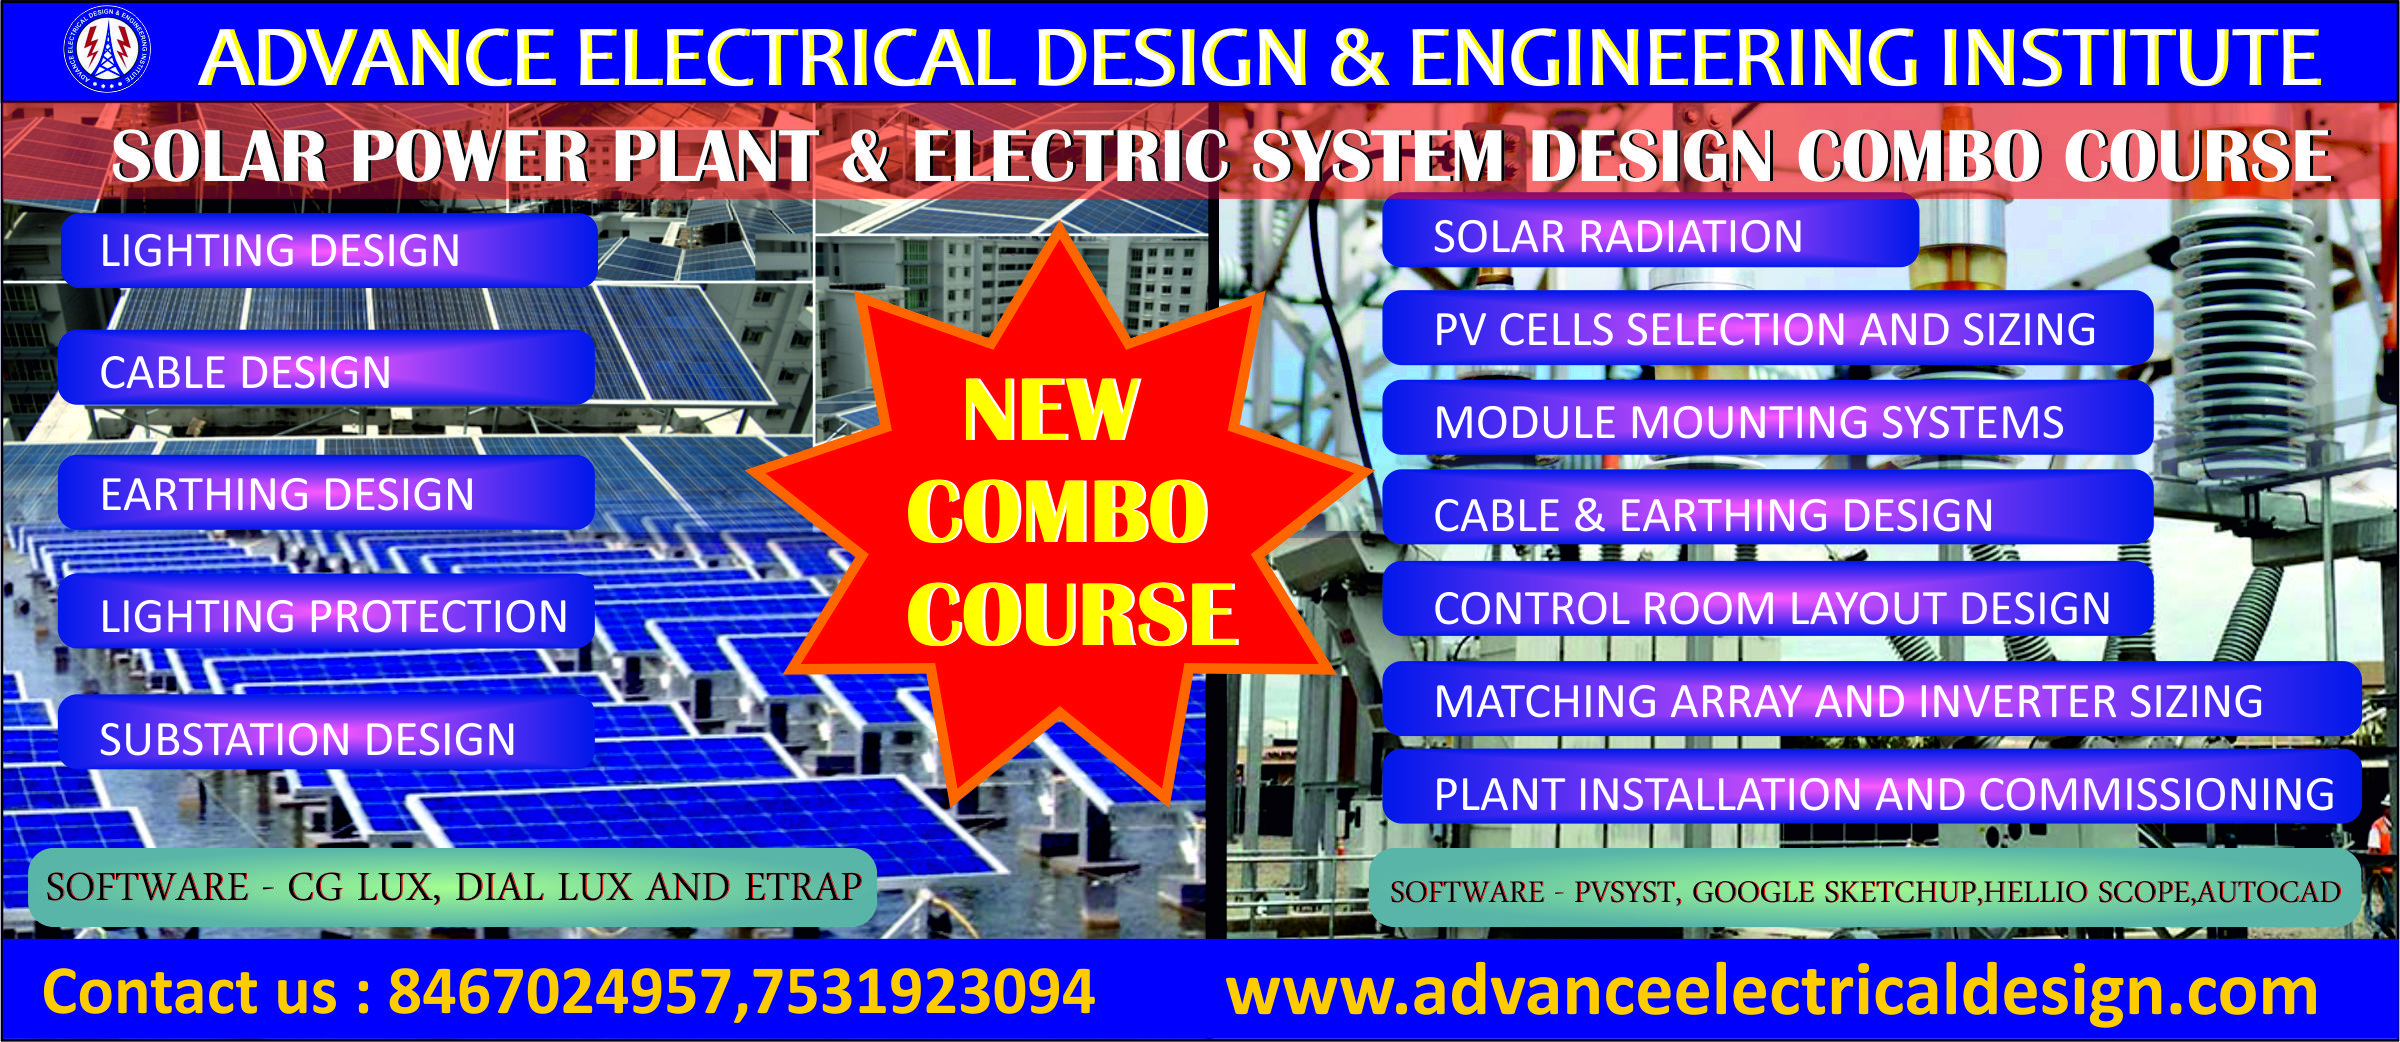 hight resolution of solar power plant design and electrical system design courses